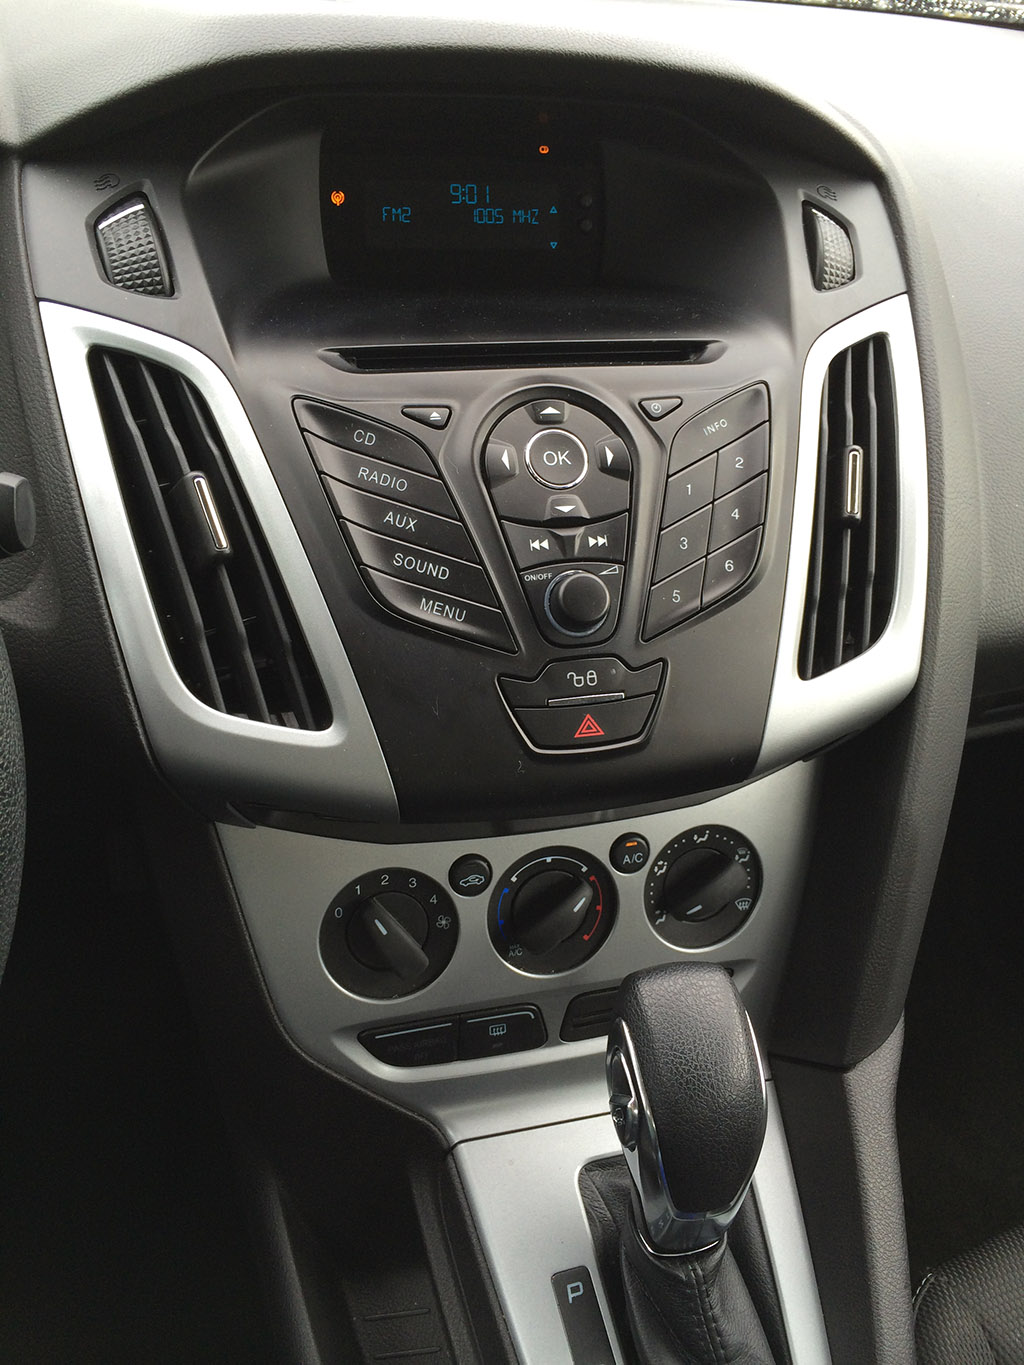 2013 ford focus center console